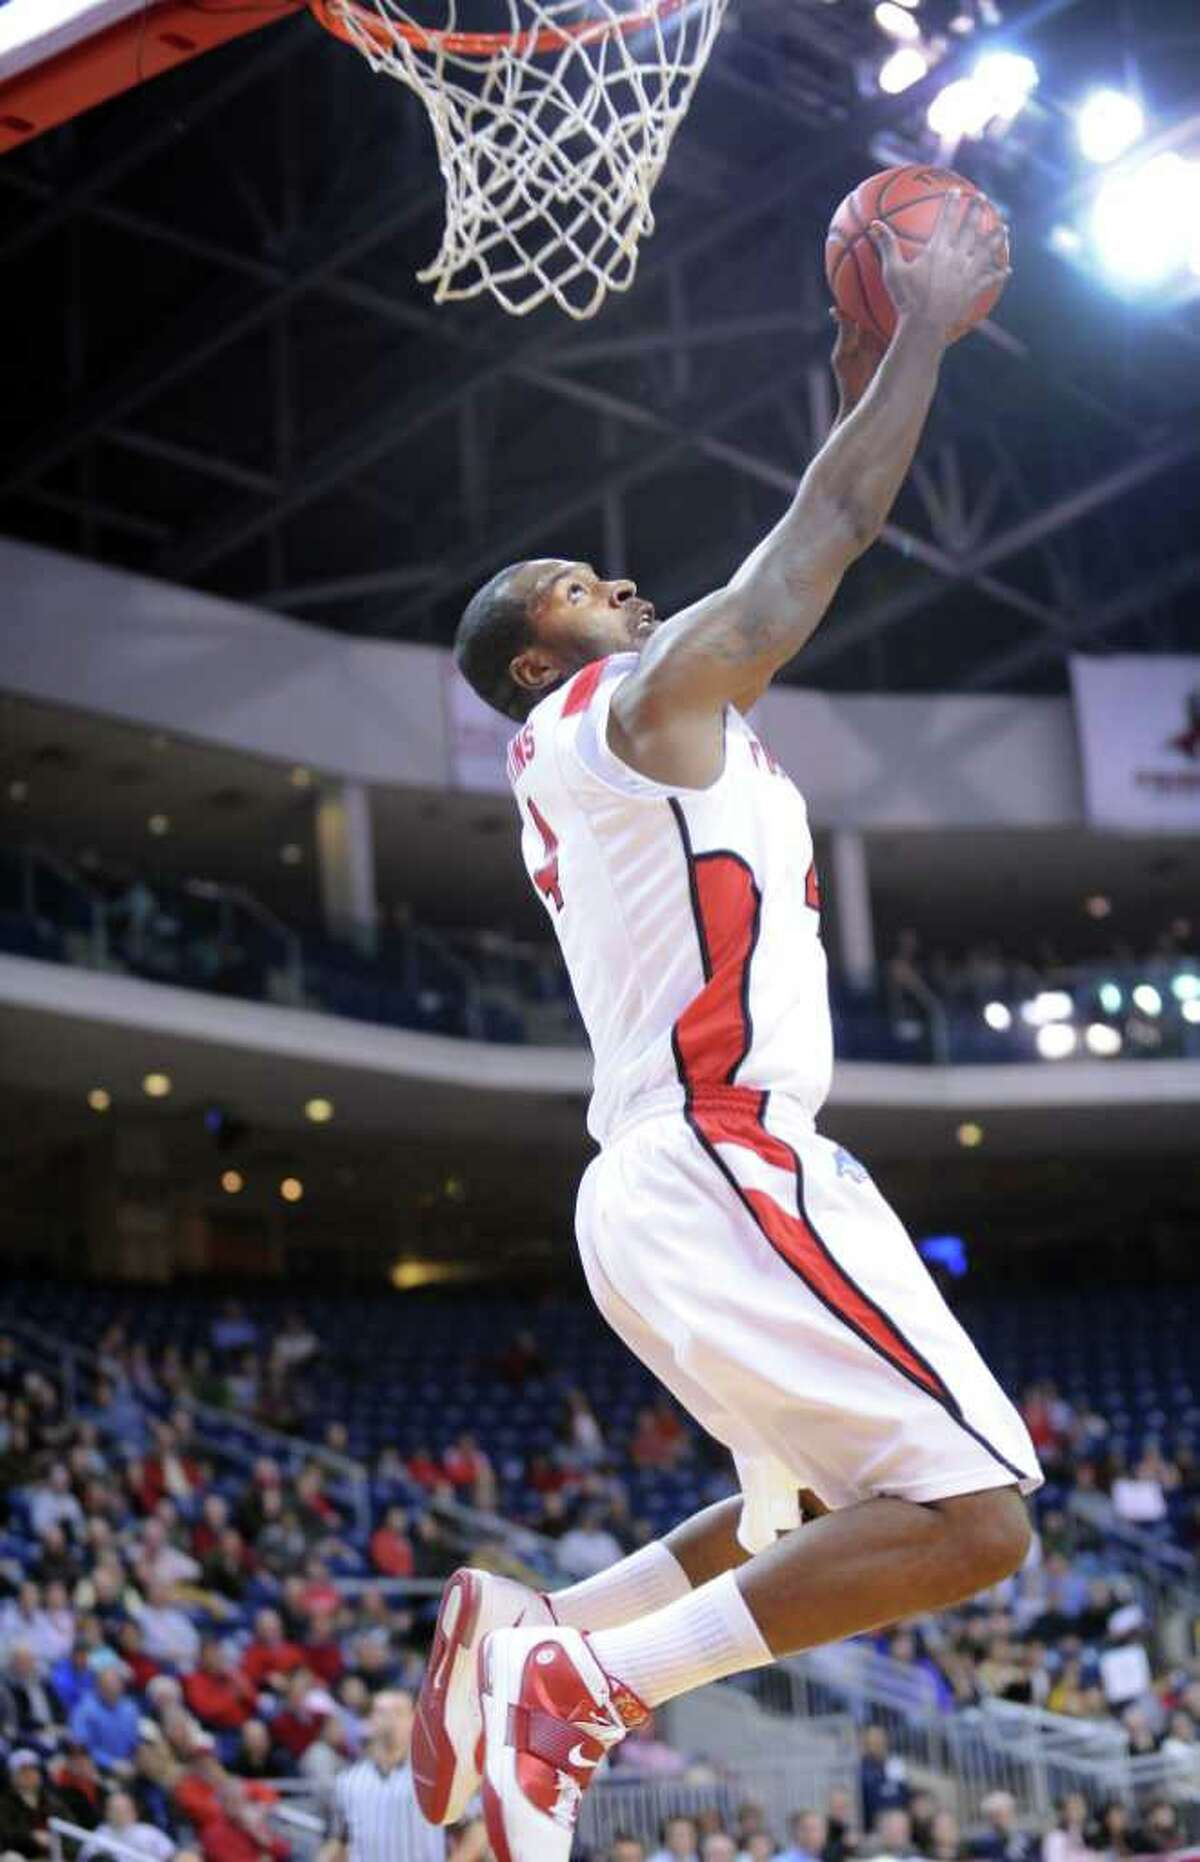 Fairfield's Yorel Hawkins dunks the ball during game action against Austin Peay at the Webster Bank Arena at Harbor Yard in Bridgeport, Conn. Saturday, Feb. 19, 2011.